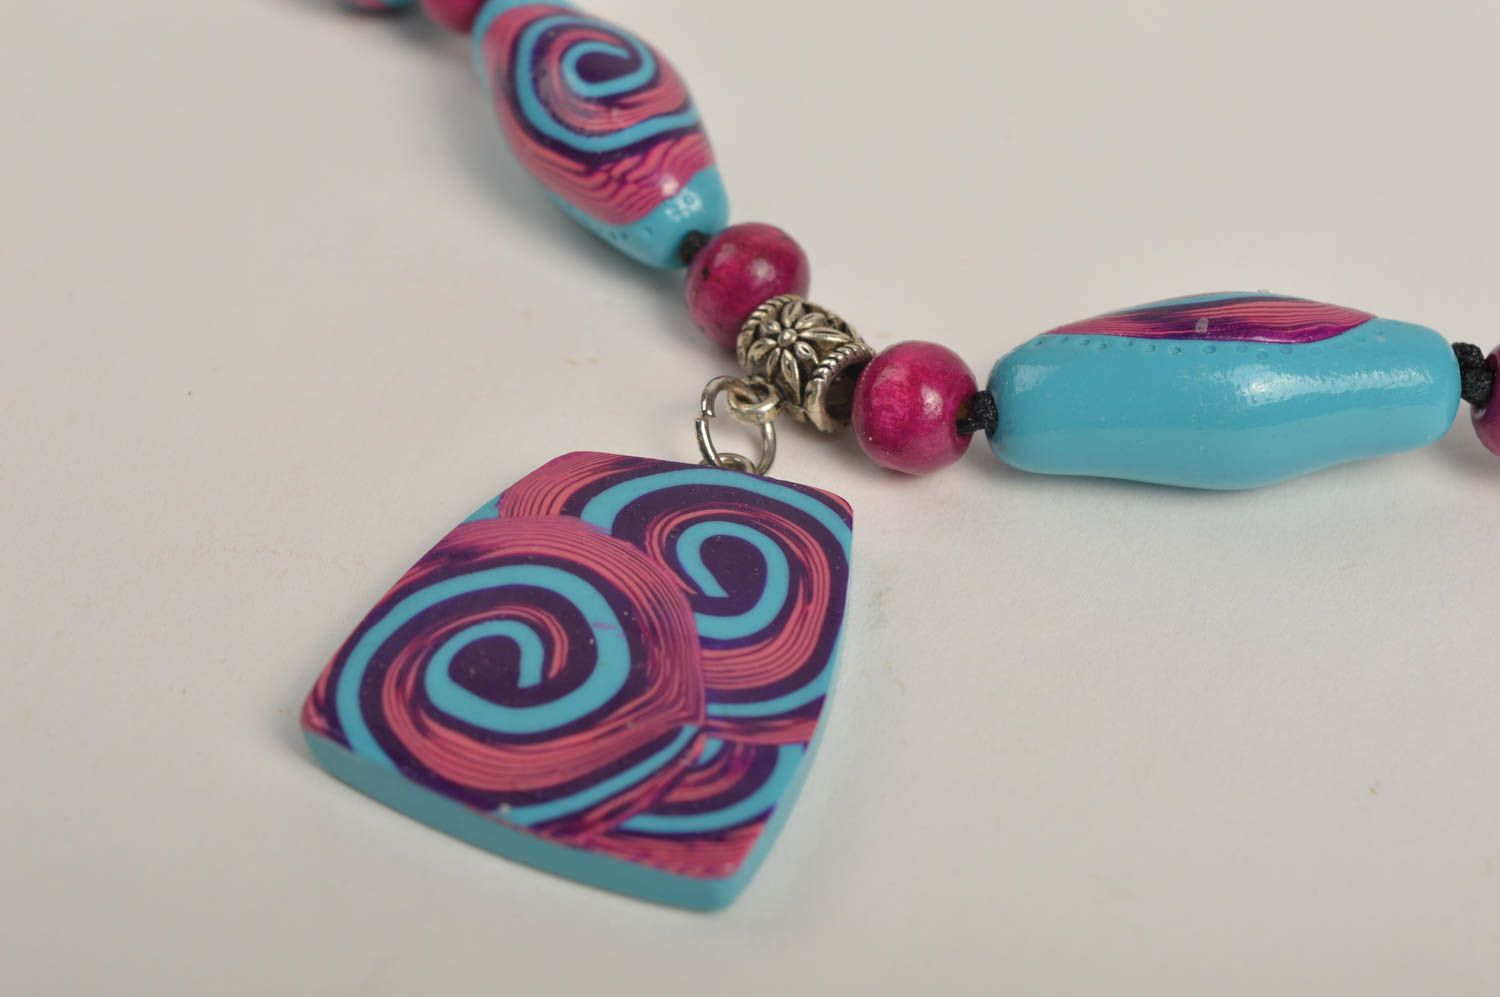 Polymer clay pendant exclusive jewelry handmade plastic jewelry designer jewelry photo 4